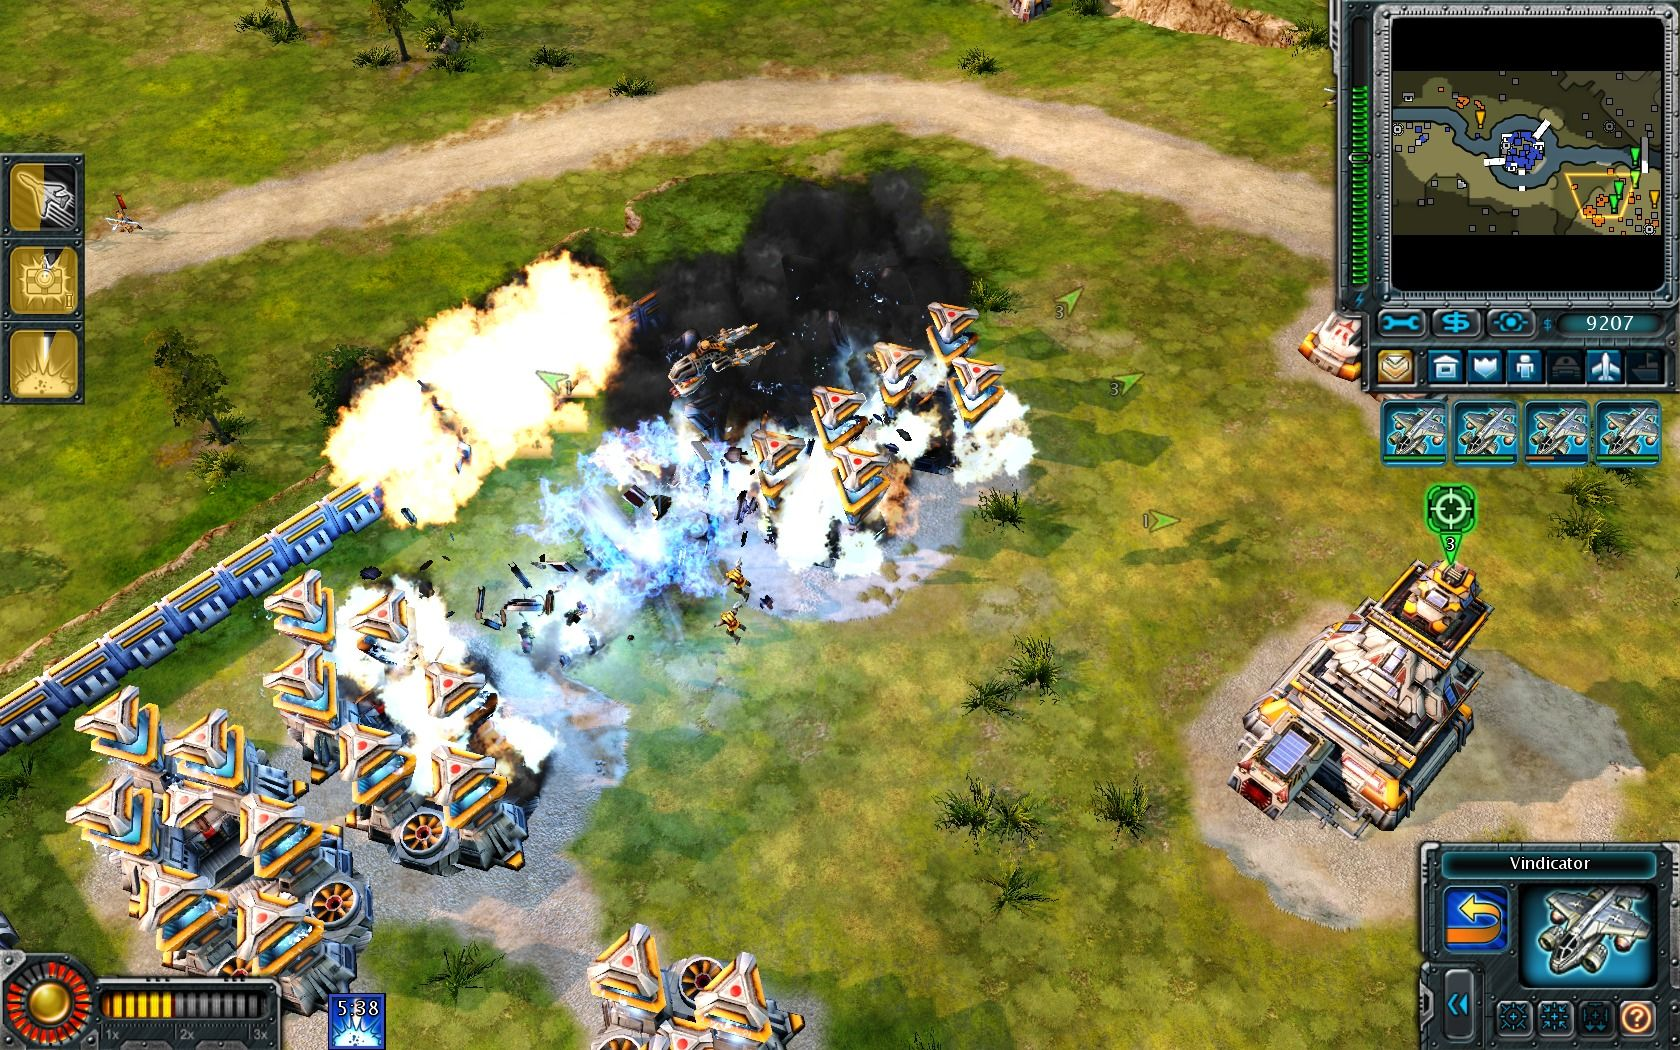 "Command & Conquer: Red Alert 3 - Uprising Windows ""I've got a present for ya!"", but there's no Havoc around to confirm it."